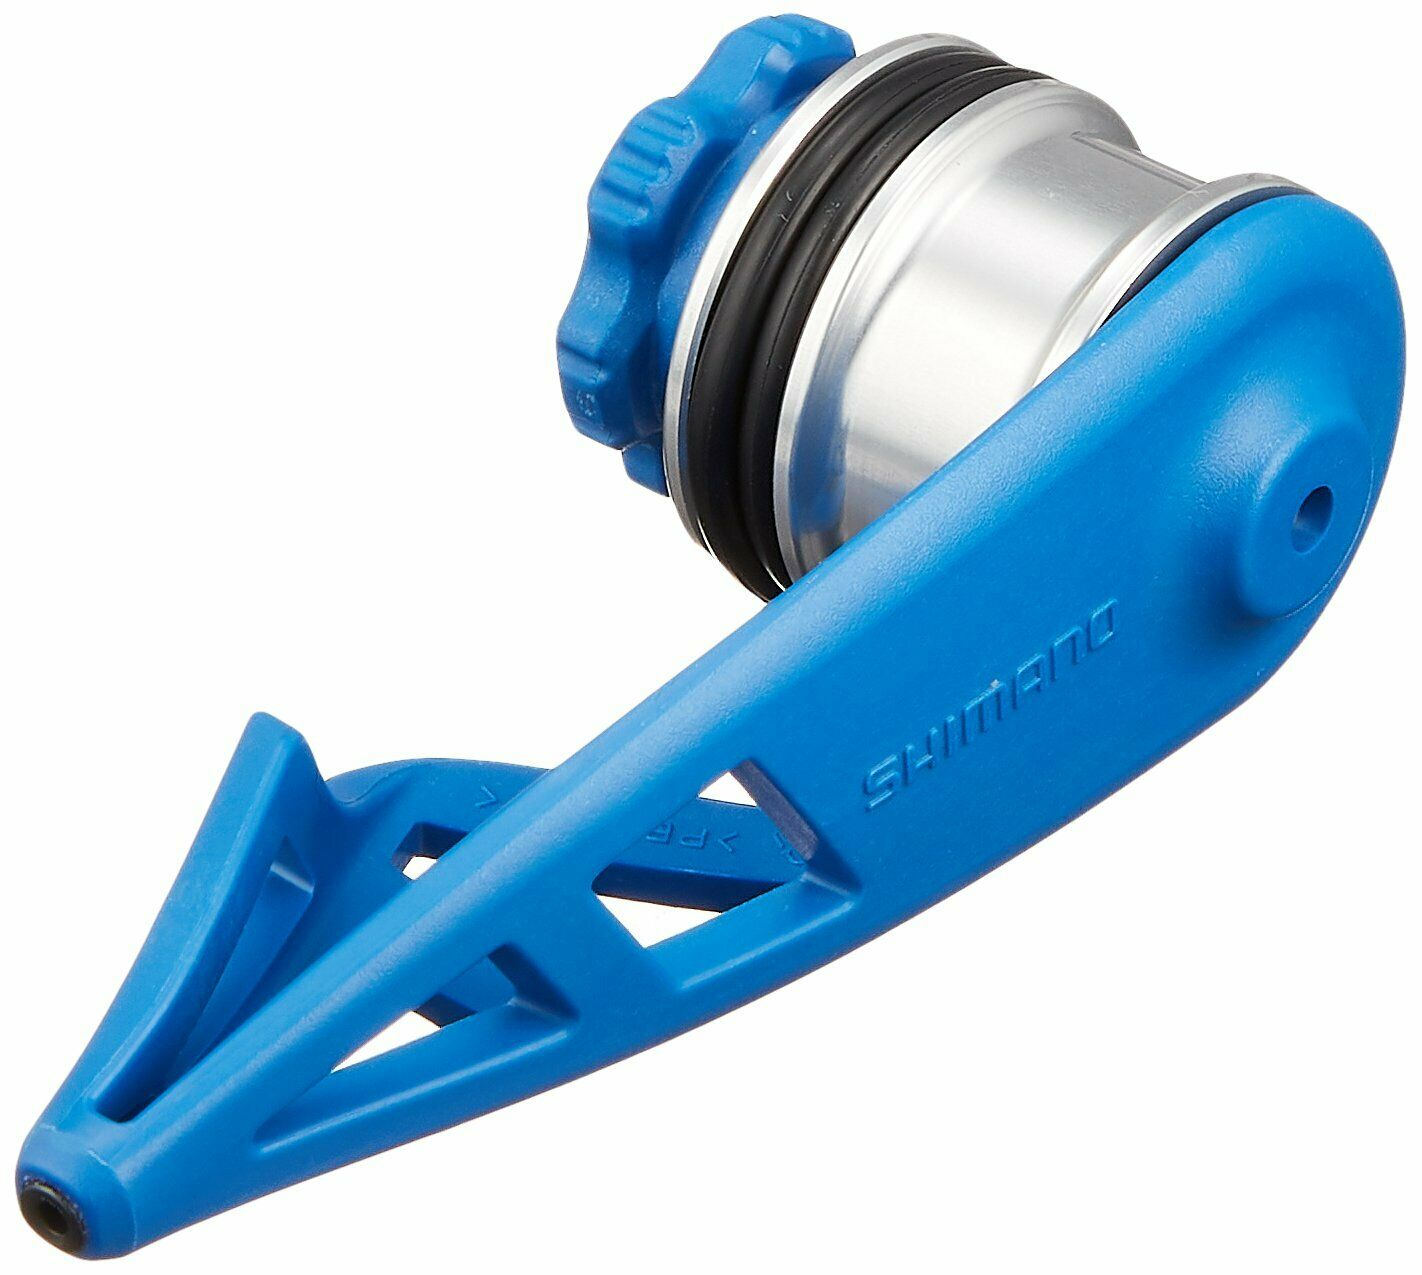 SHIMANO bobbin winder light type TH201M blu JAPAN